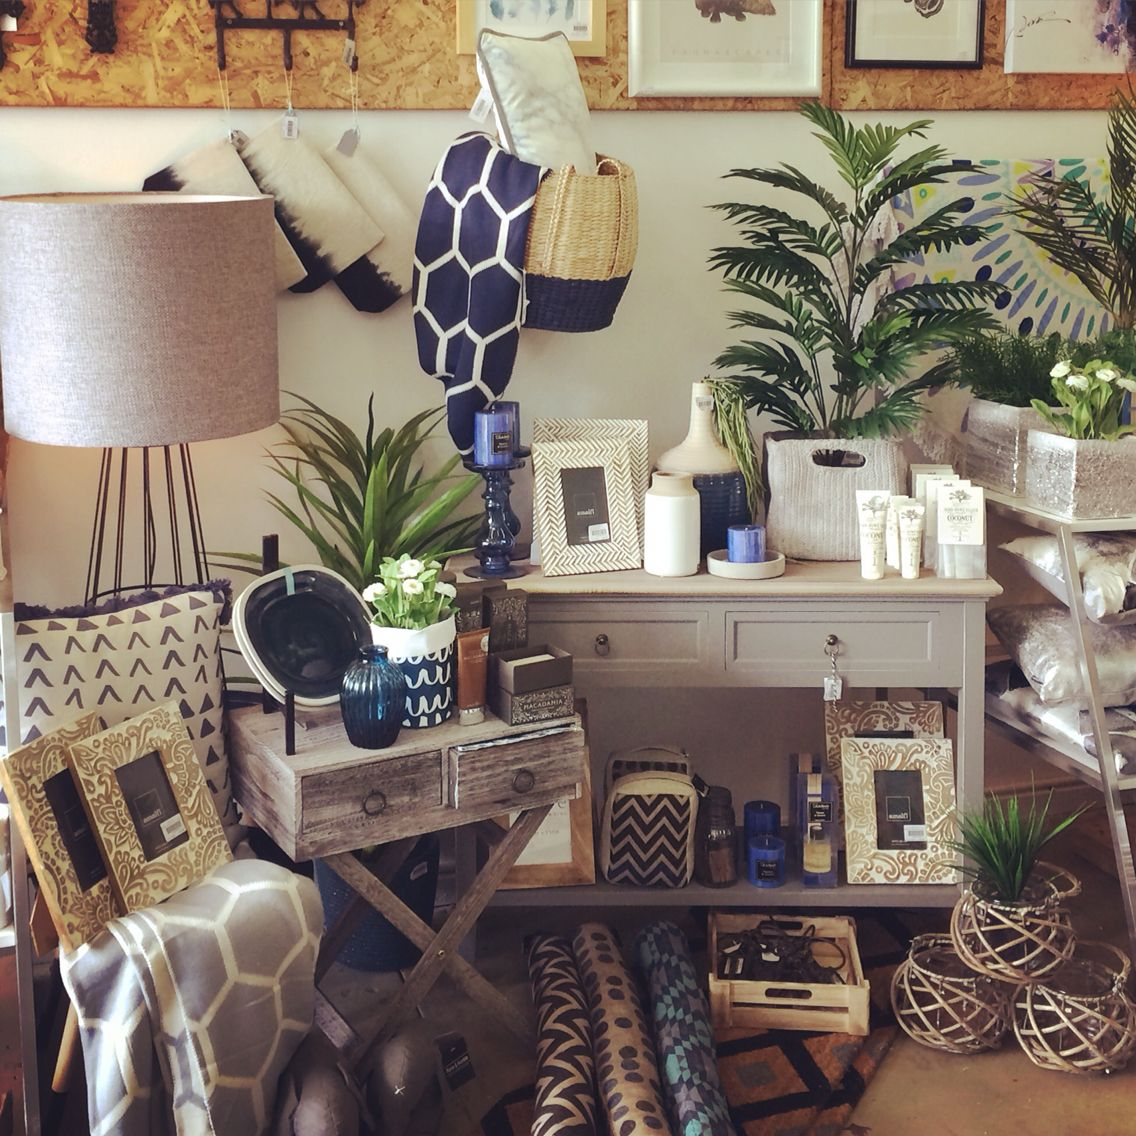 Home Decor Online Shop: Navy And Grey Visual Merchandising, Shop Display November